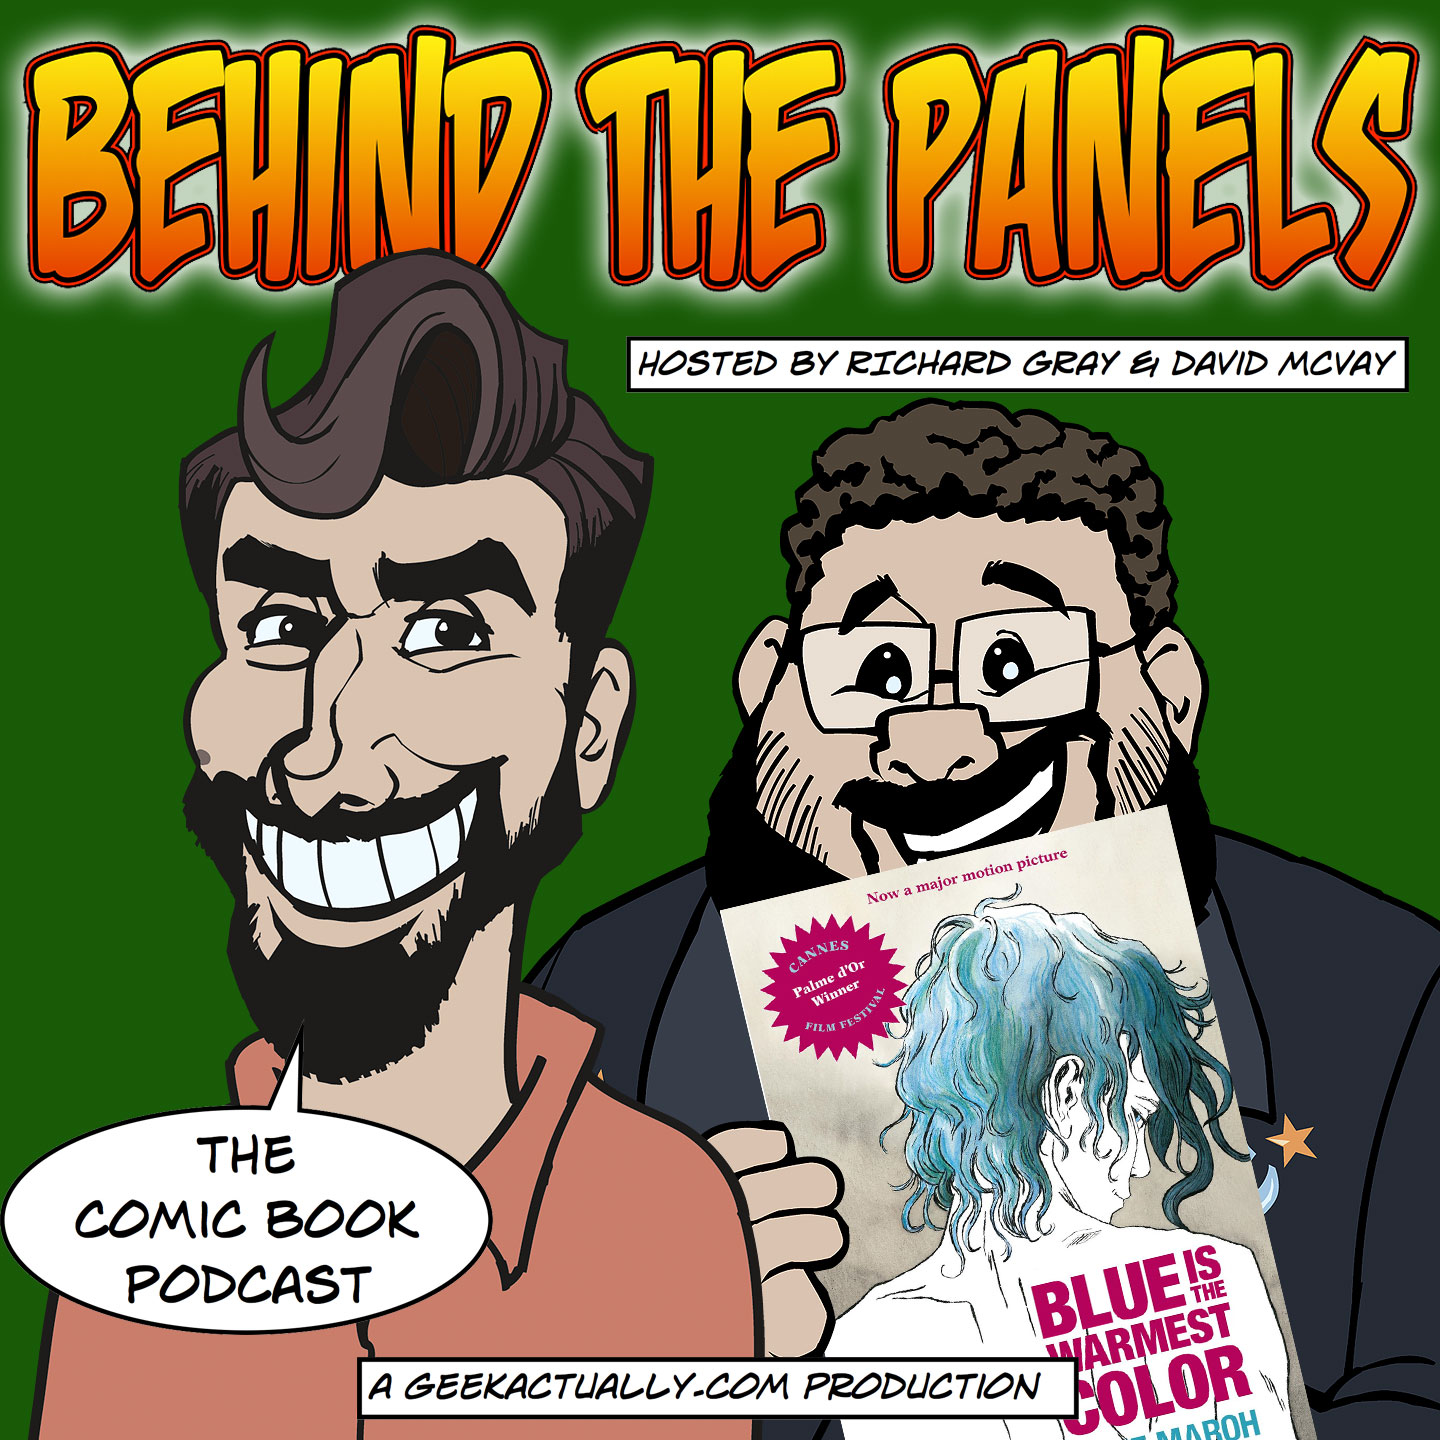 behind the panels ep87 cover art - Blue Is The Warmest Color Book